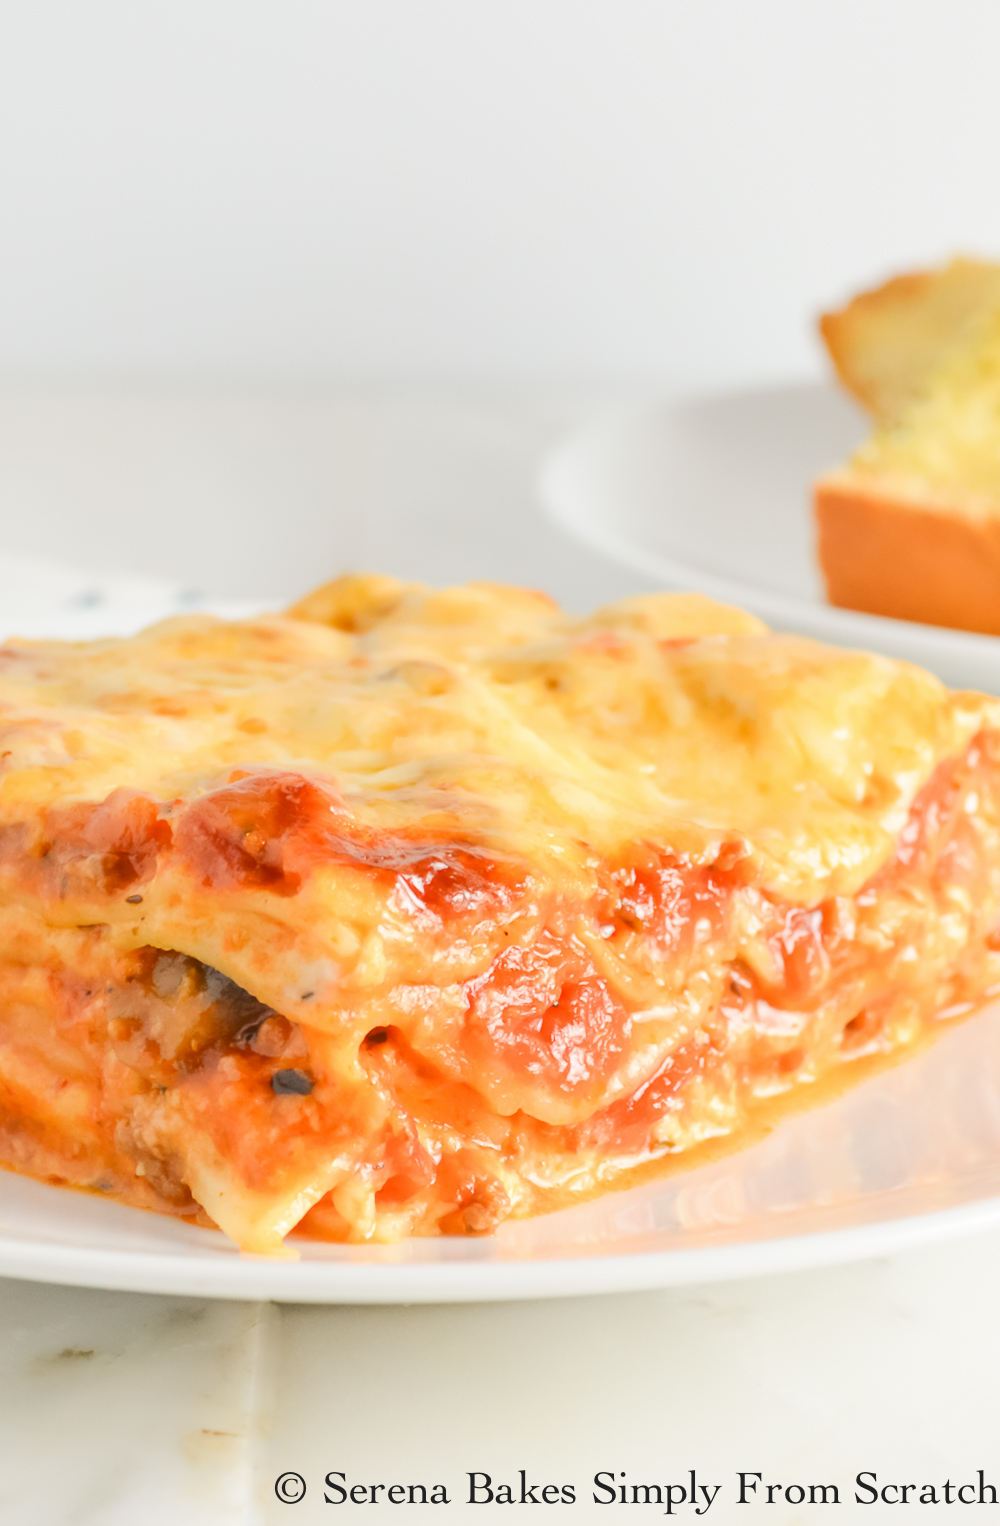 Lasagna with creamy béchamel sauce is a great alternative to ricotta! It will quickly replace your traditional lasagna recipe. serenabakessimplyfromscratch.com